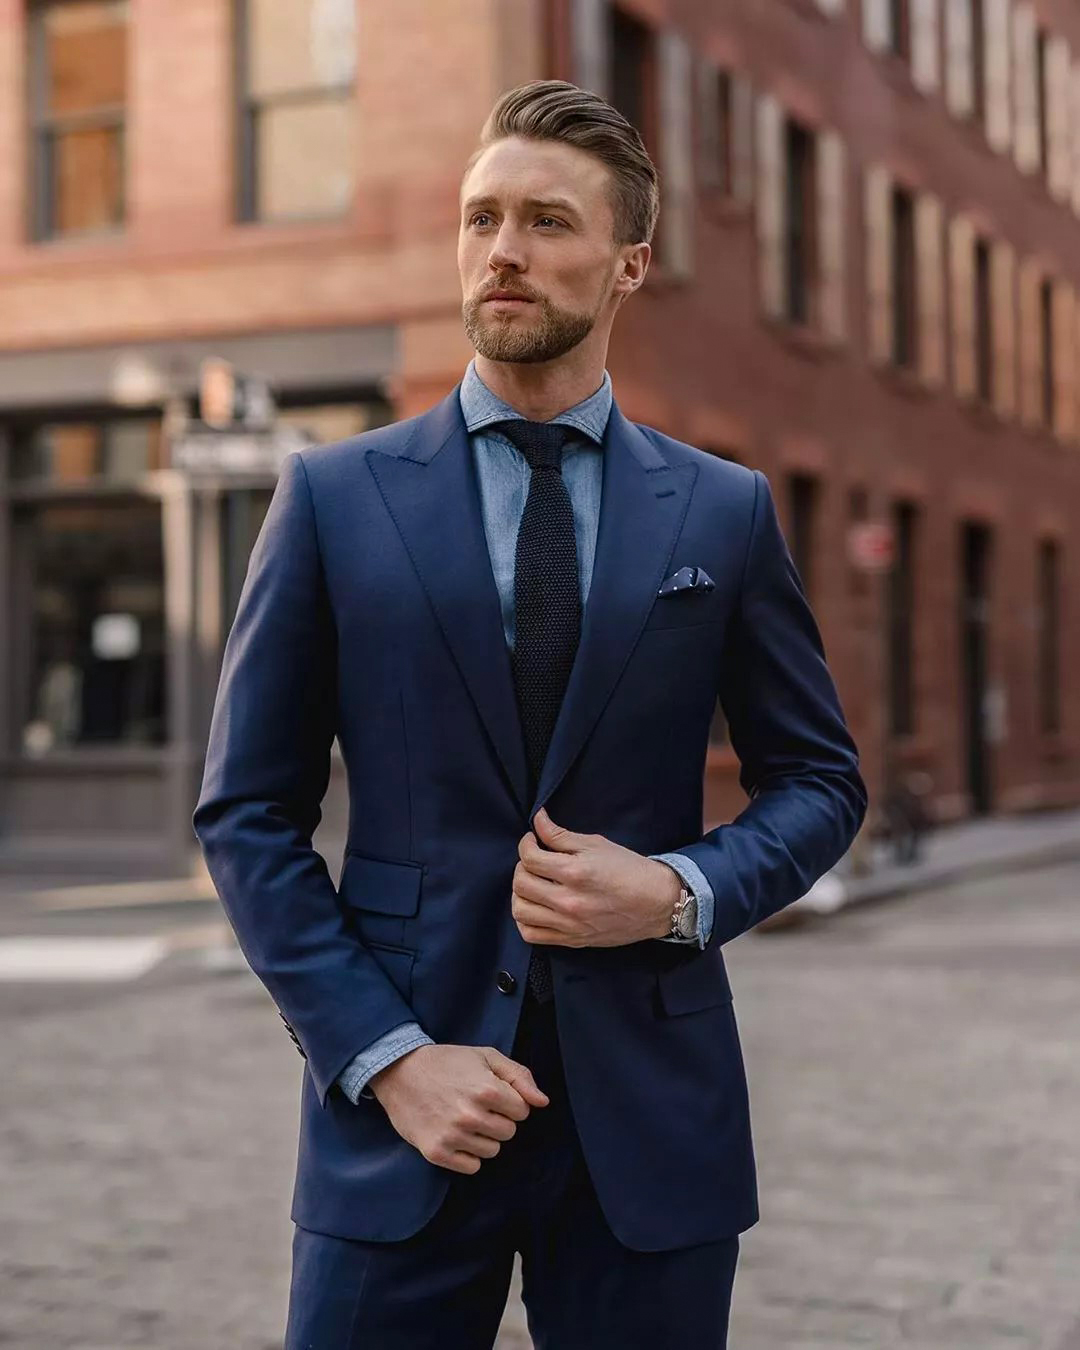 navy suit and blue shirt color combination